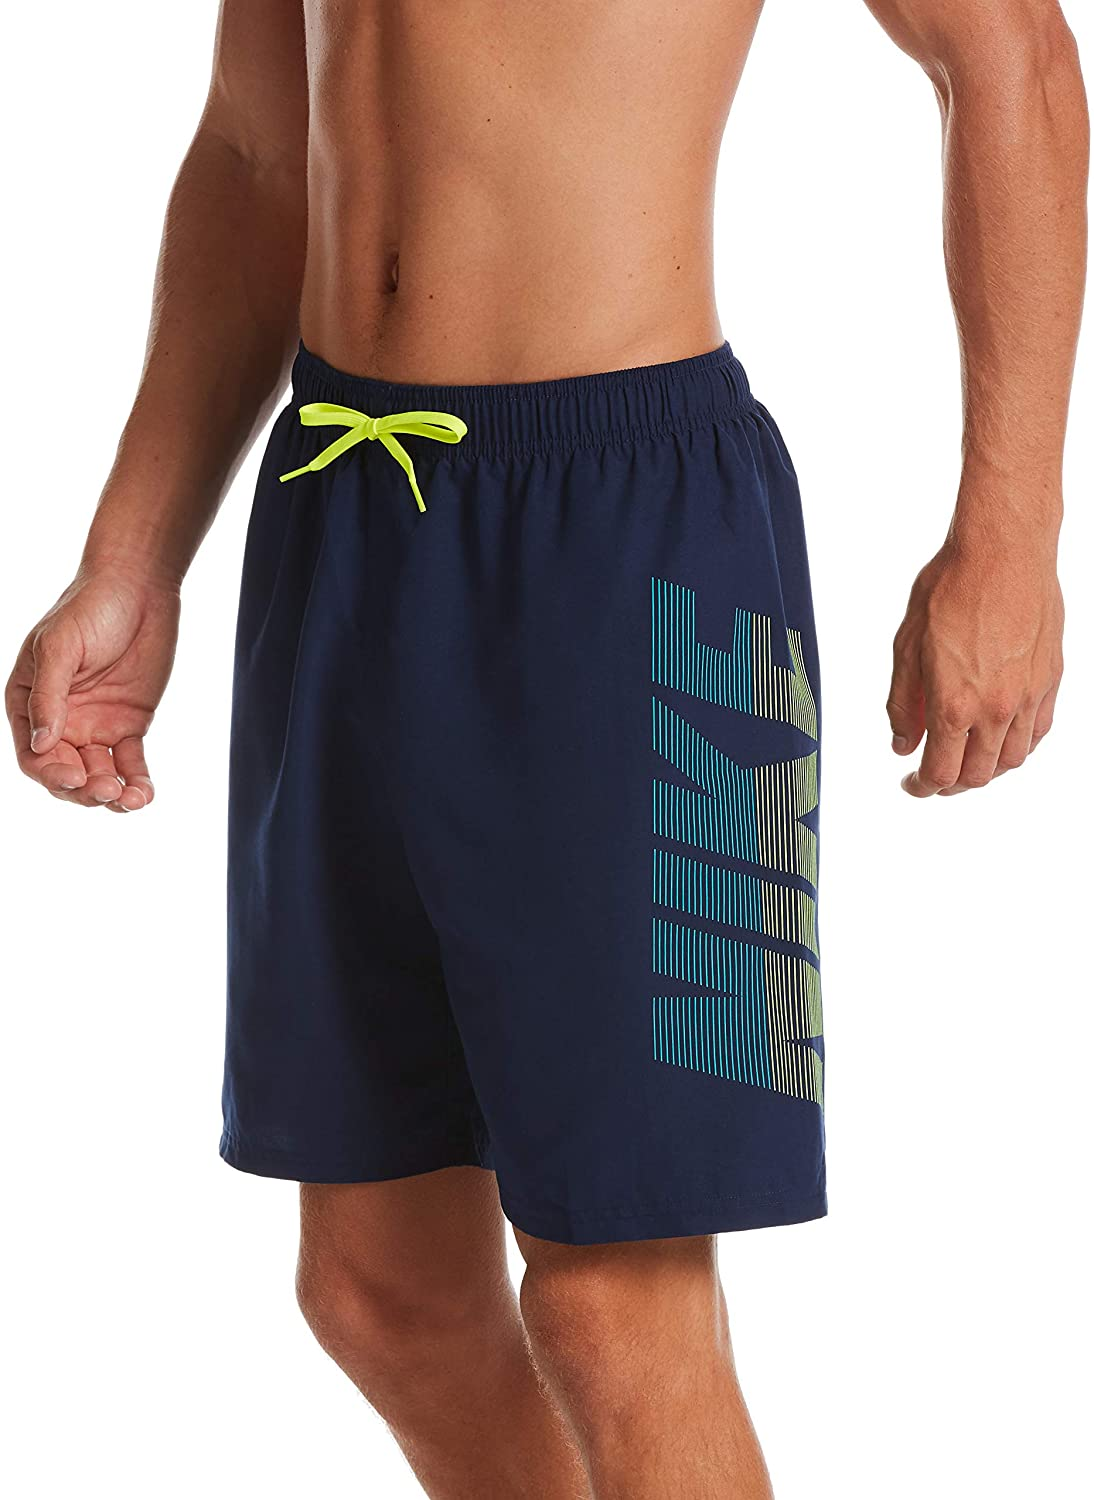 Men's Nike Logo Volley Short Swim Trunk in Midnight Navy color from the front